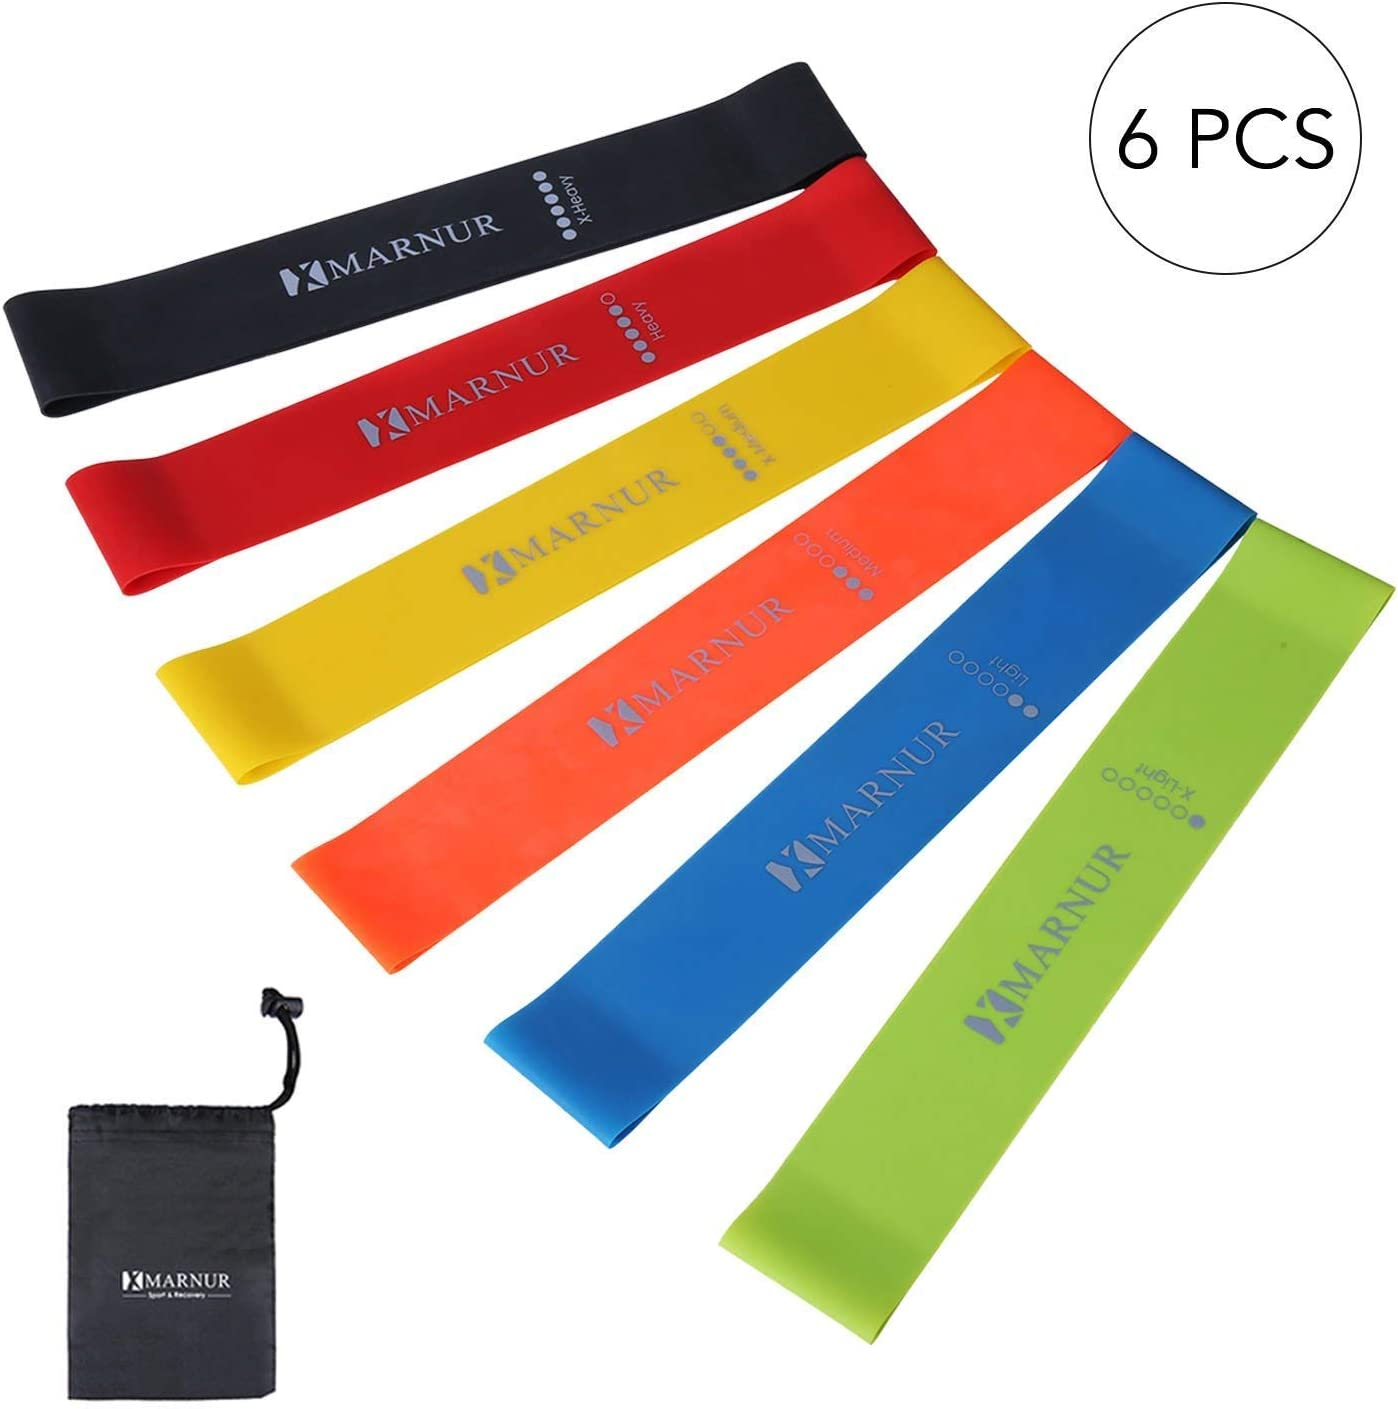 6 PCS MARNUR Resistance Loop Bands Exercise Bands Resistance Loops Workout Yoga Pilates Arm Stretching Strap Rehab Home Fitness for Men Women